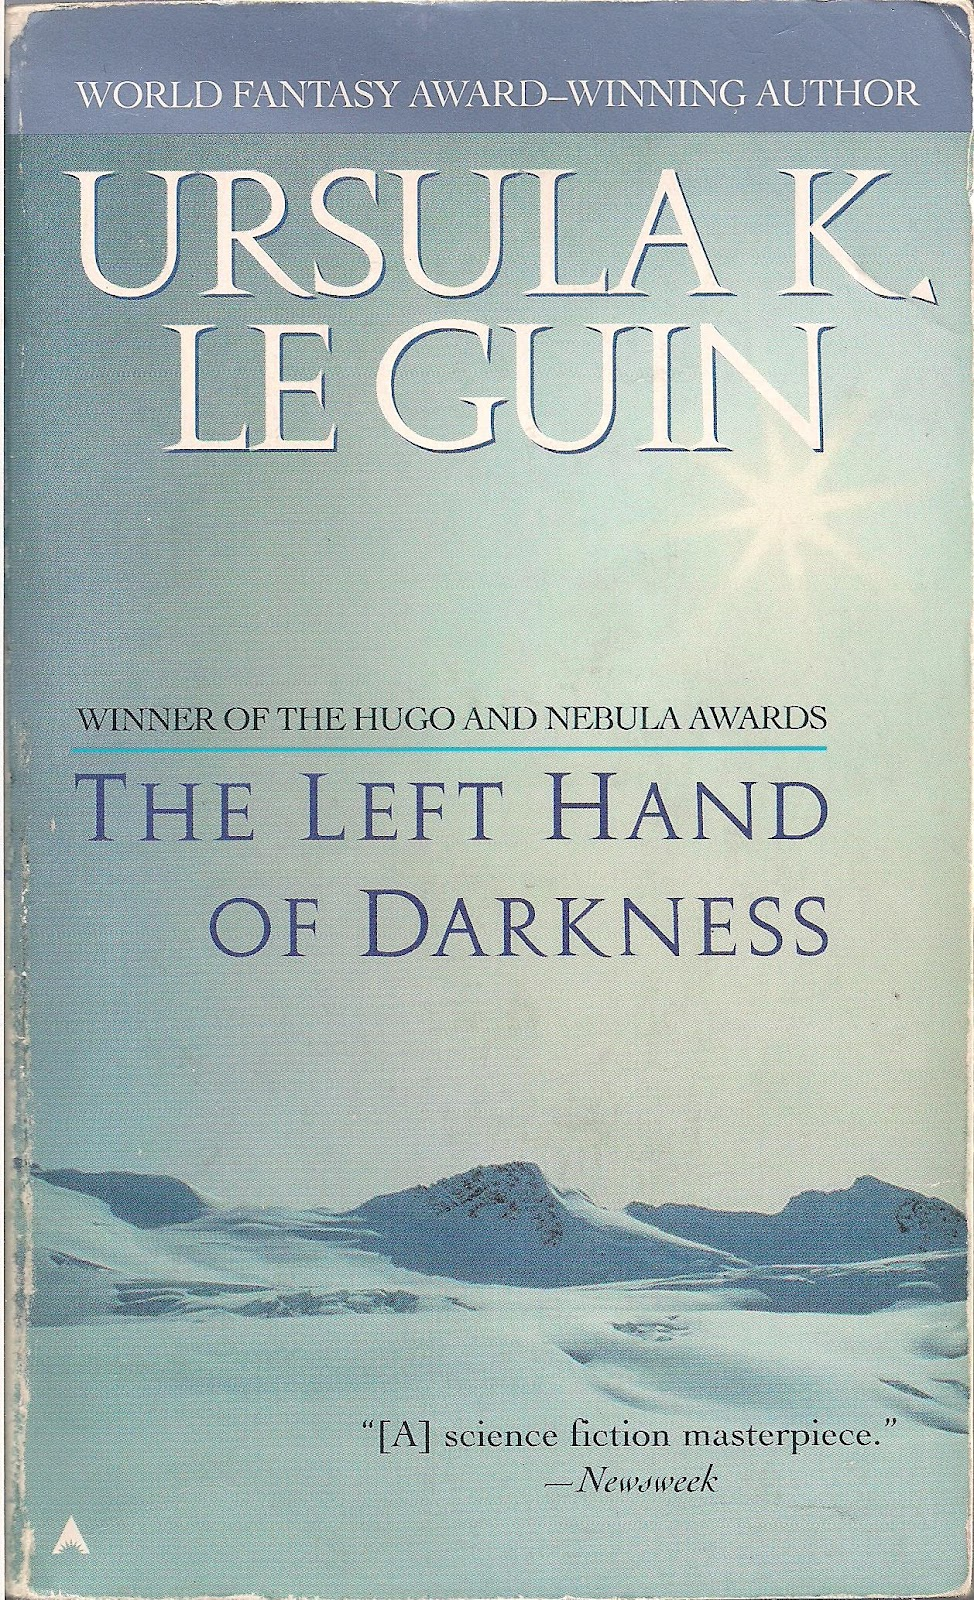 the left hand of darkness essays The left hand of darkness analytical george eliot essays on poverty the lottery vs the hunger games essay mother to son essay quotes write essay your country.